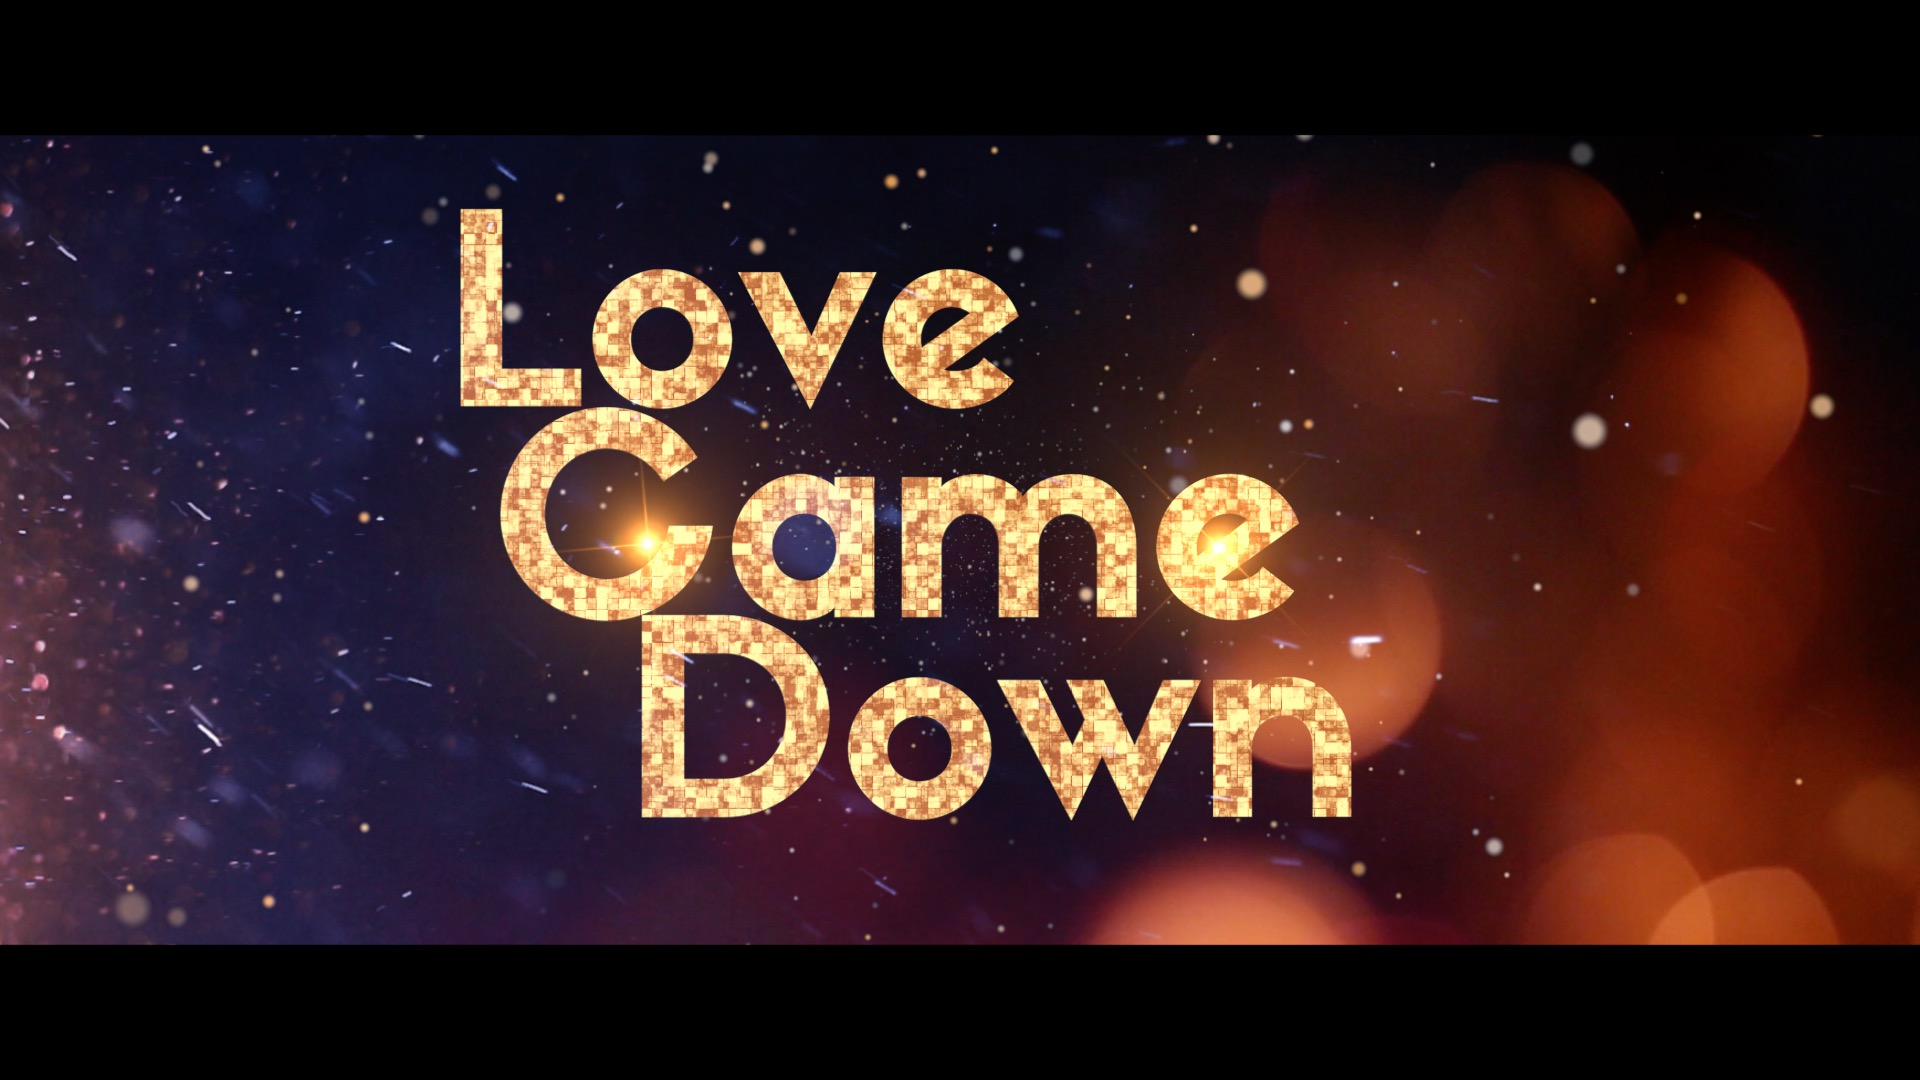 Love Came Down - Christmas is a celebration Jesus' birth. The Son of God came down to us to show us what it really means to love, and to be loved. During this series, Pastor Jamie challenges the church to be active in servant projects and simple acts of kindness to demonstrate the heart of God to our community. Click here to watch the messages from this series.